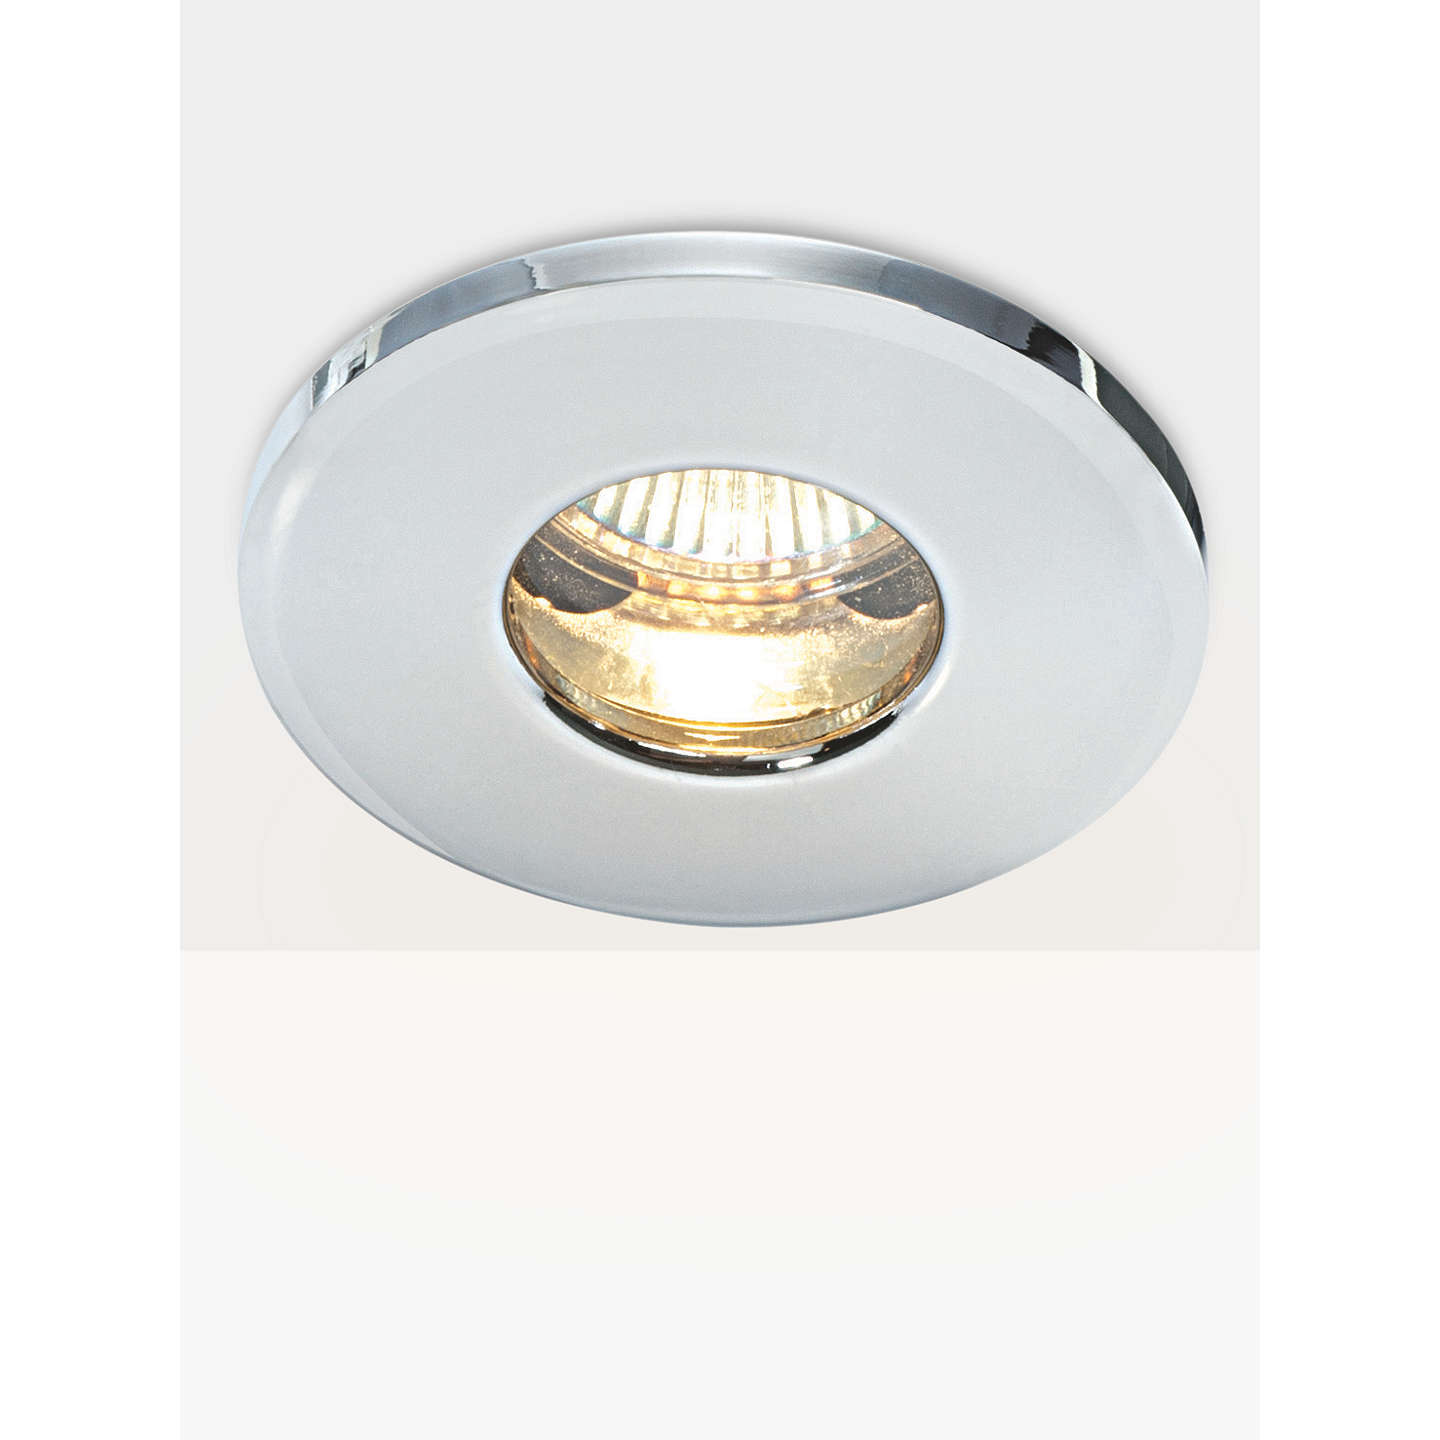 Saxby recessed bathroom spotlight chrome at john lewis buysaxby recessed bathroom spotlight chrome online at johnlewis aloadofball Images